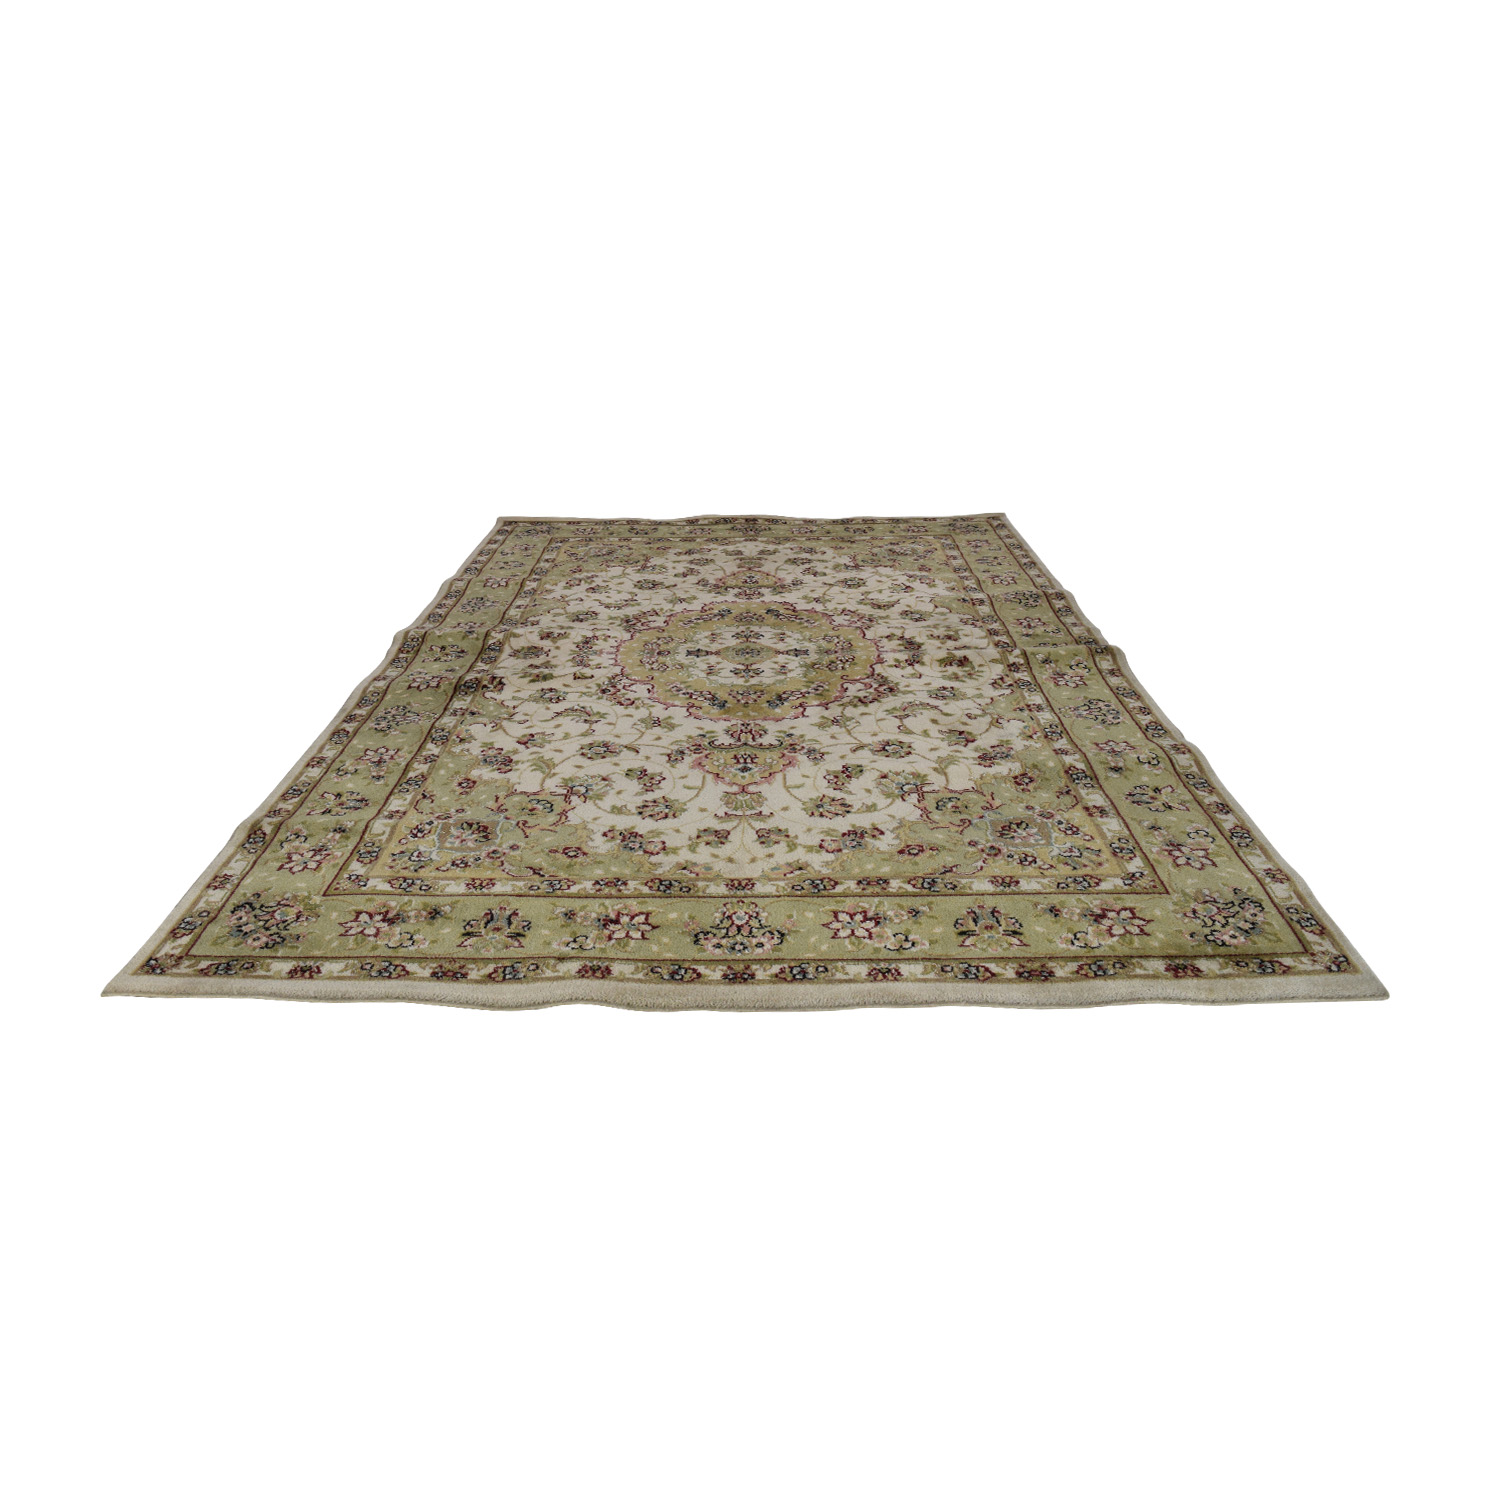 Unknown Brand Oversized Area Rug price